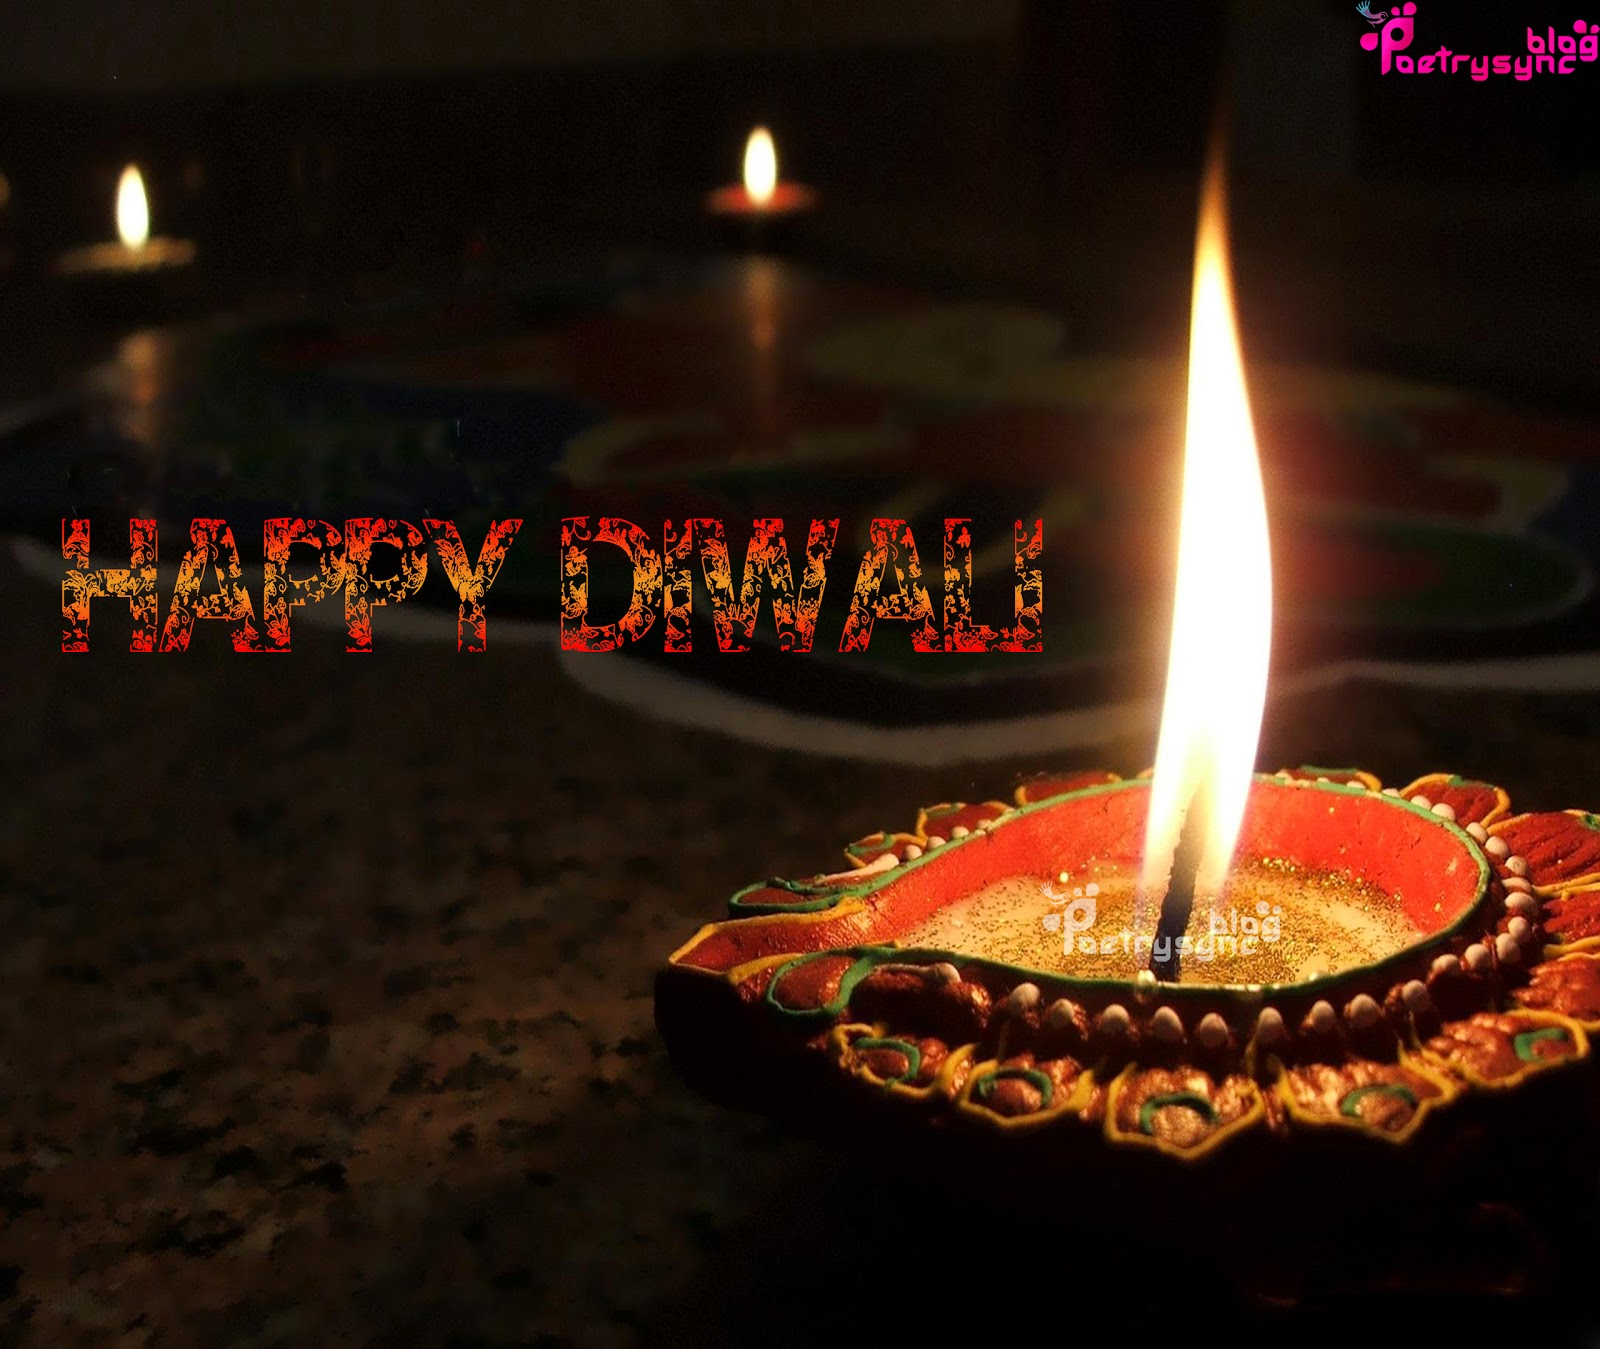 Great Wallpaper Love Diwali - Happy-Diwali-Dia-Image-Greeting-Wishes-Wallpaper-By-Poetrysync1blog  Photograph_845272.jpg